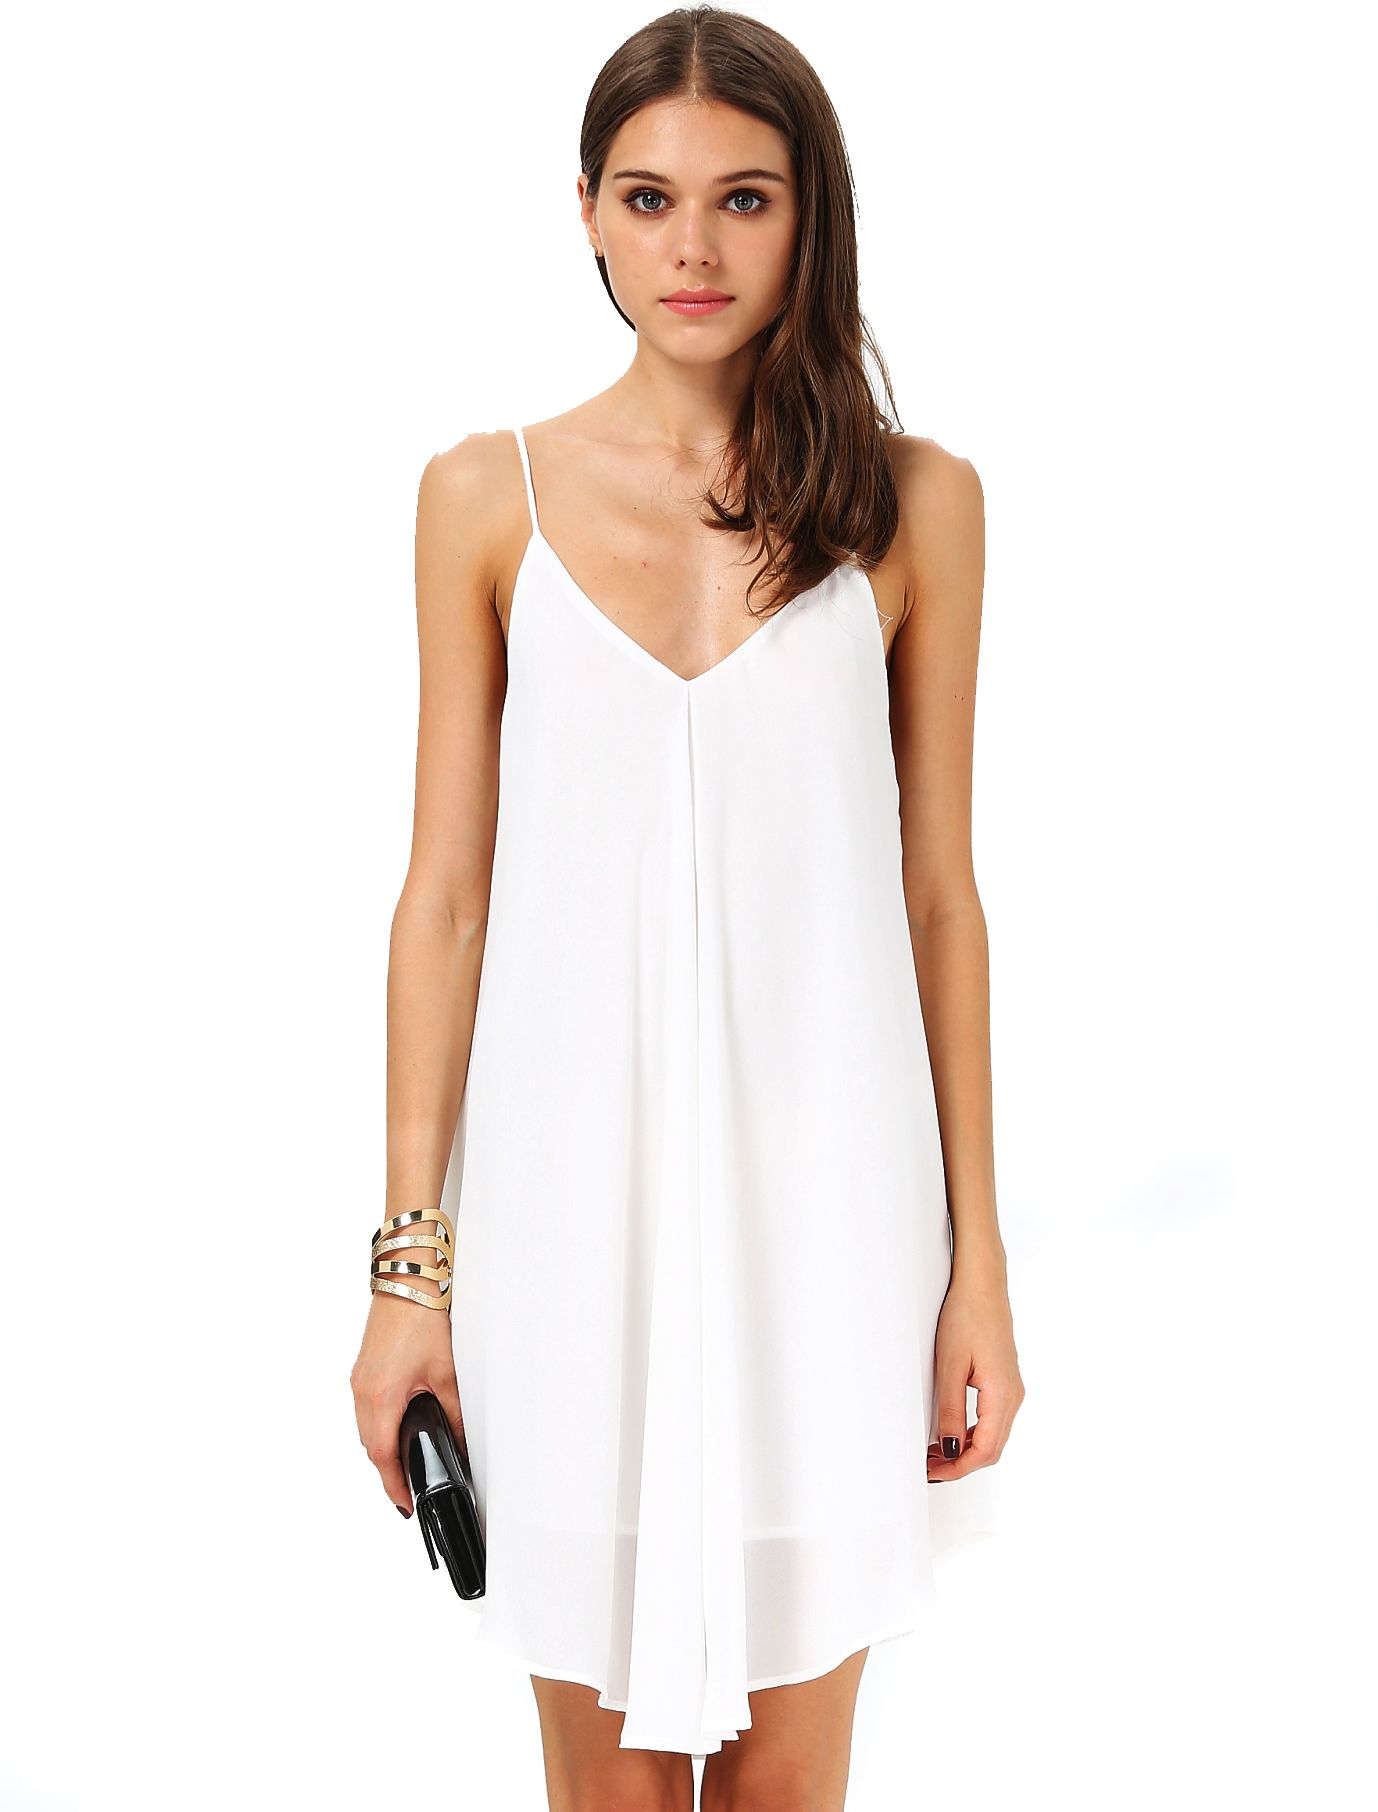 6f40dbd2b1 White Spaghetti Strap Backless Loose Dress